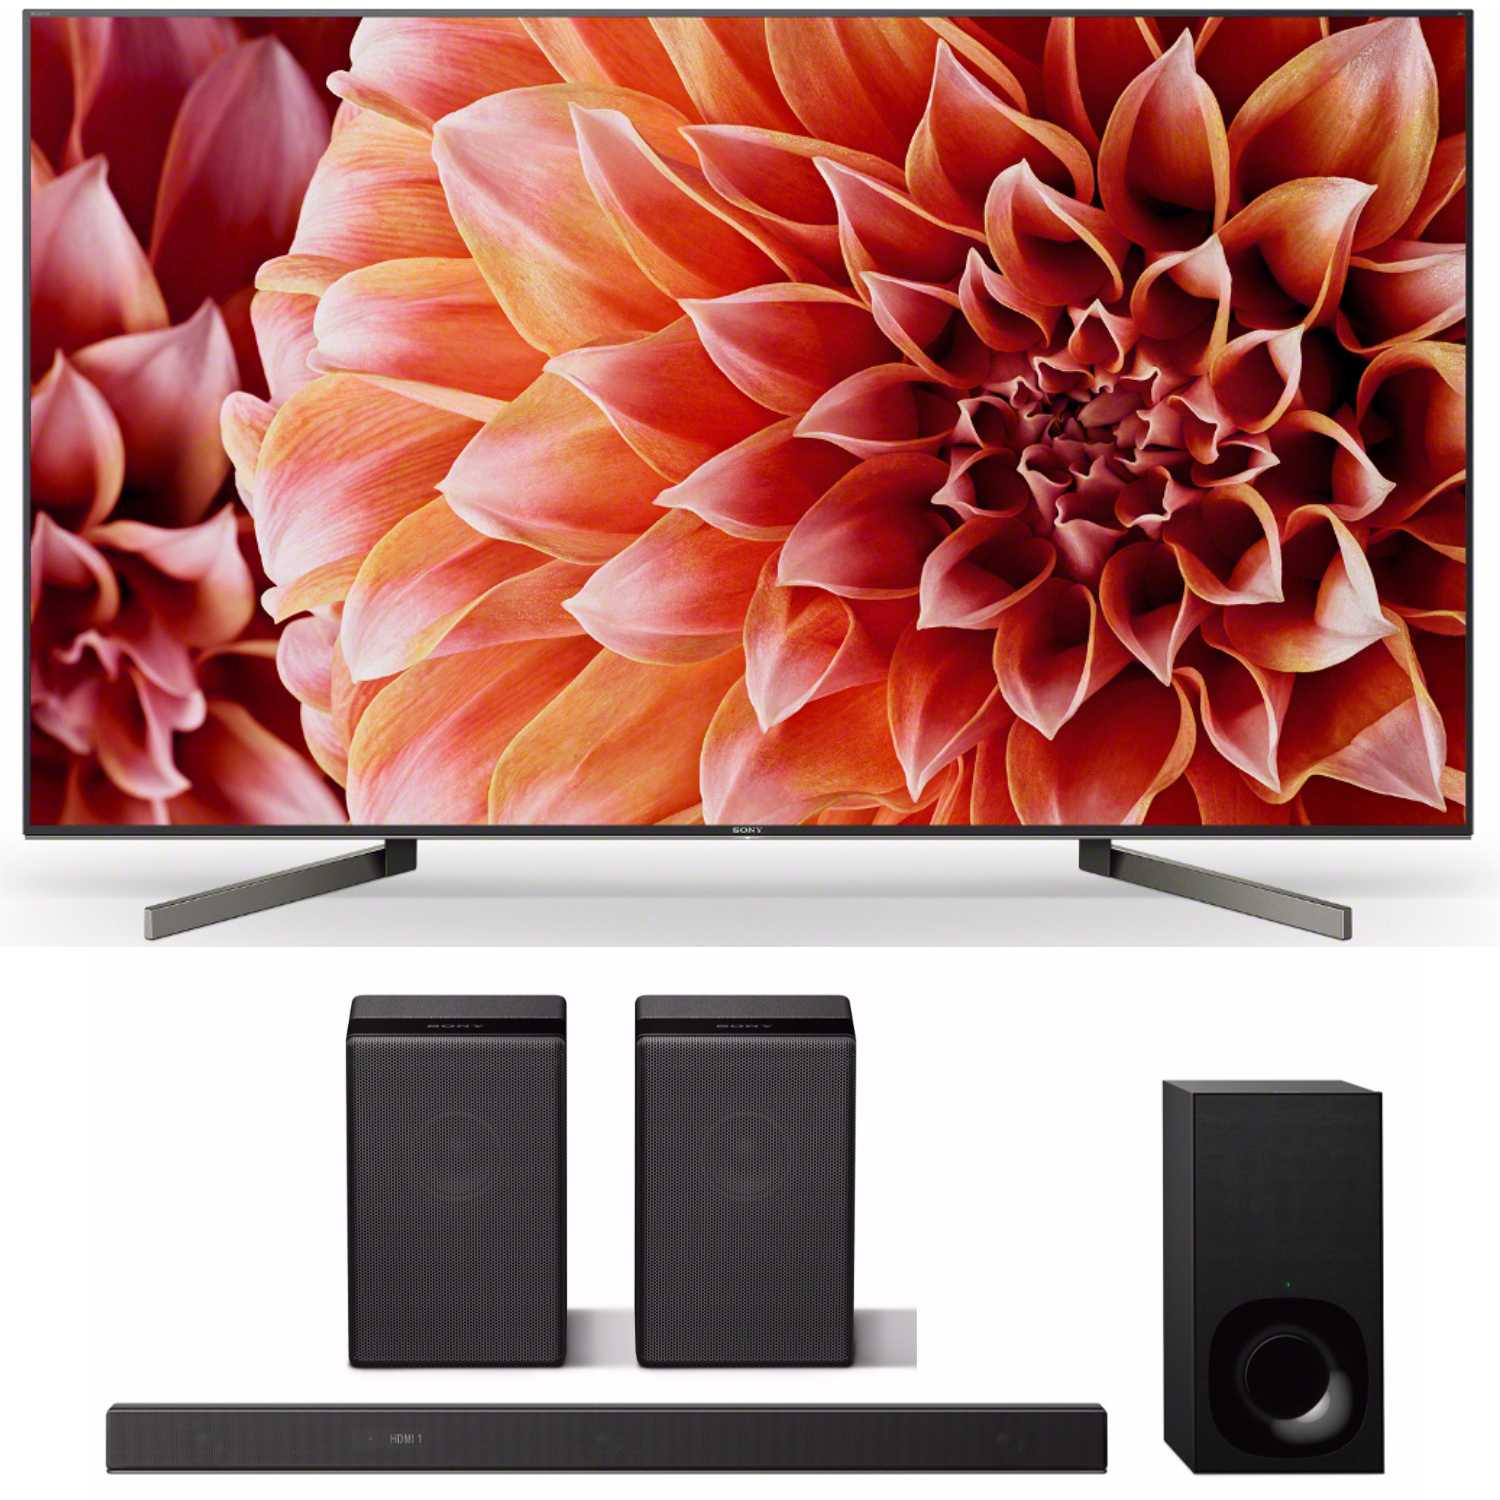 Sony XBR55X900F 55-Inch 4K UltraHD Smart LED TV (2018) with Soundbar and Speaker